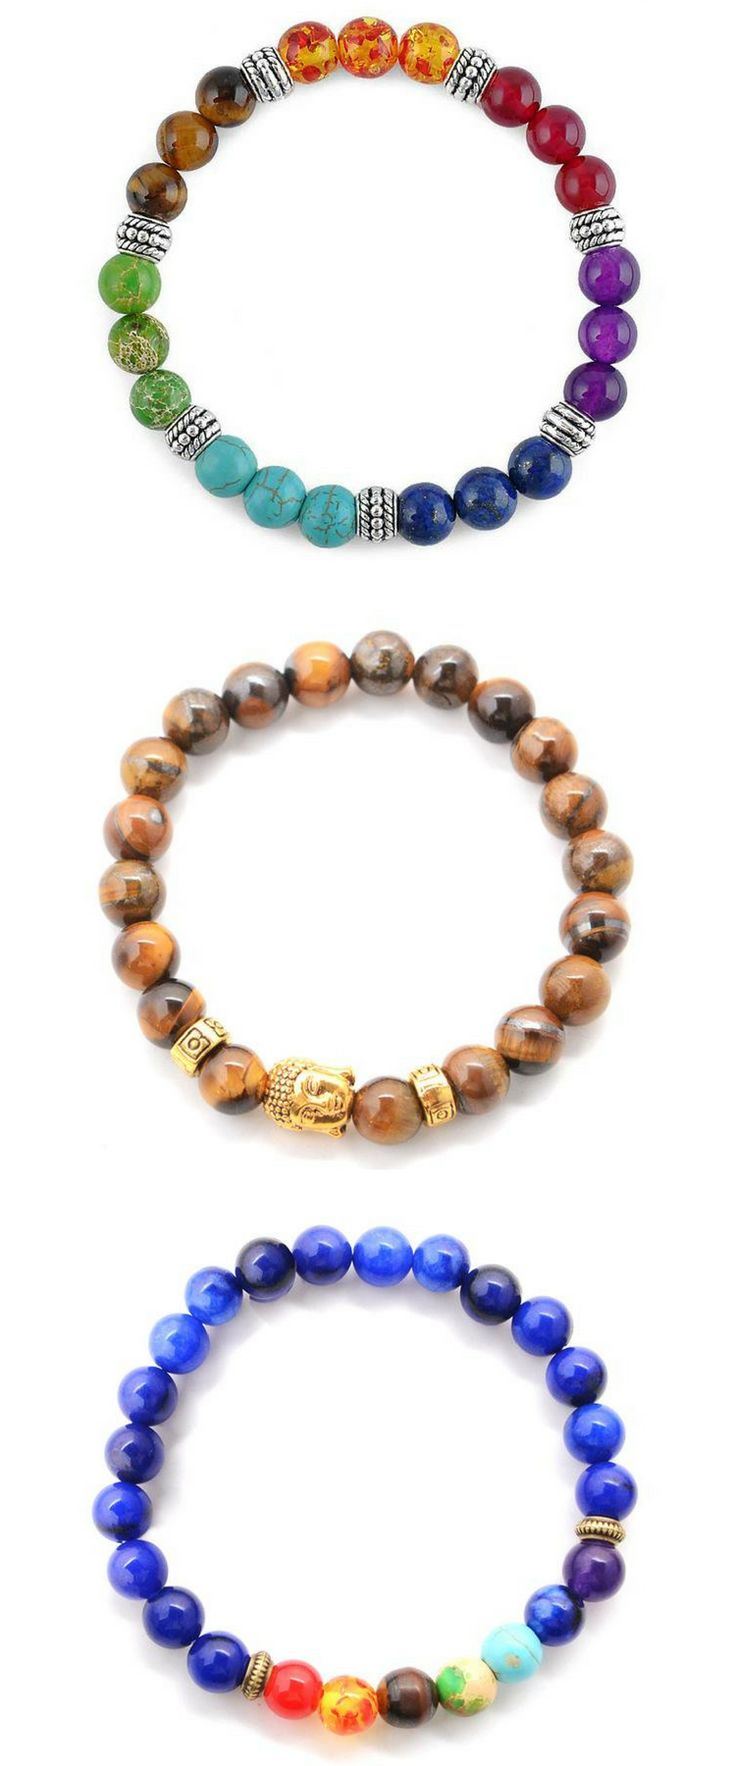 When you are in touch with your inner chakras everything will be ok! chakra bracelet | chakra bracelet diy | chakra bracelet meaning | chakra bracelet benefits |  | Chakra Bracelet | I Love Chakra Bracelet | Chakra Bracelet | Chakra bracelets | Chakra Bracelets| chakra jewelry | chakra jewelry diy |  #chakra #ChakraHealing #chakrabalancing #unisex #meditate  #bracelets #trendingnow